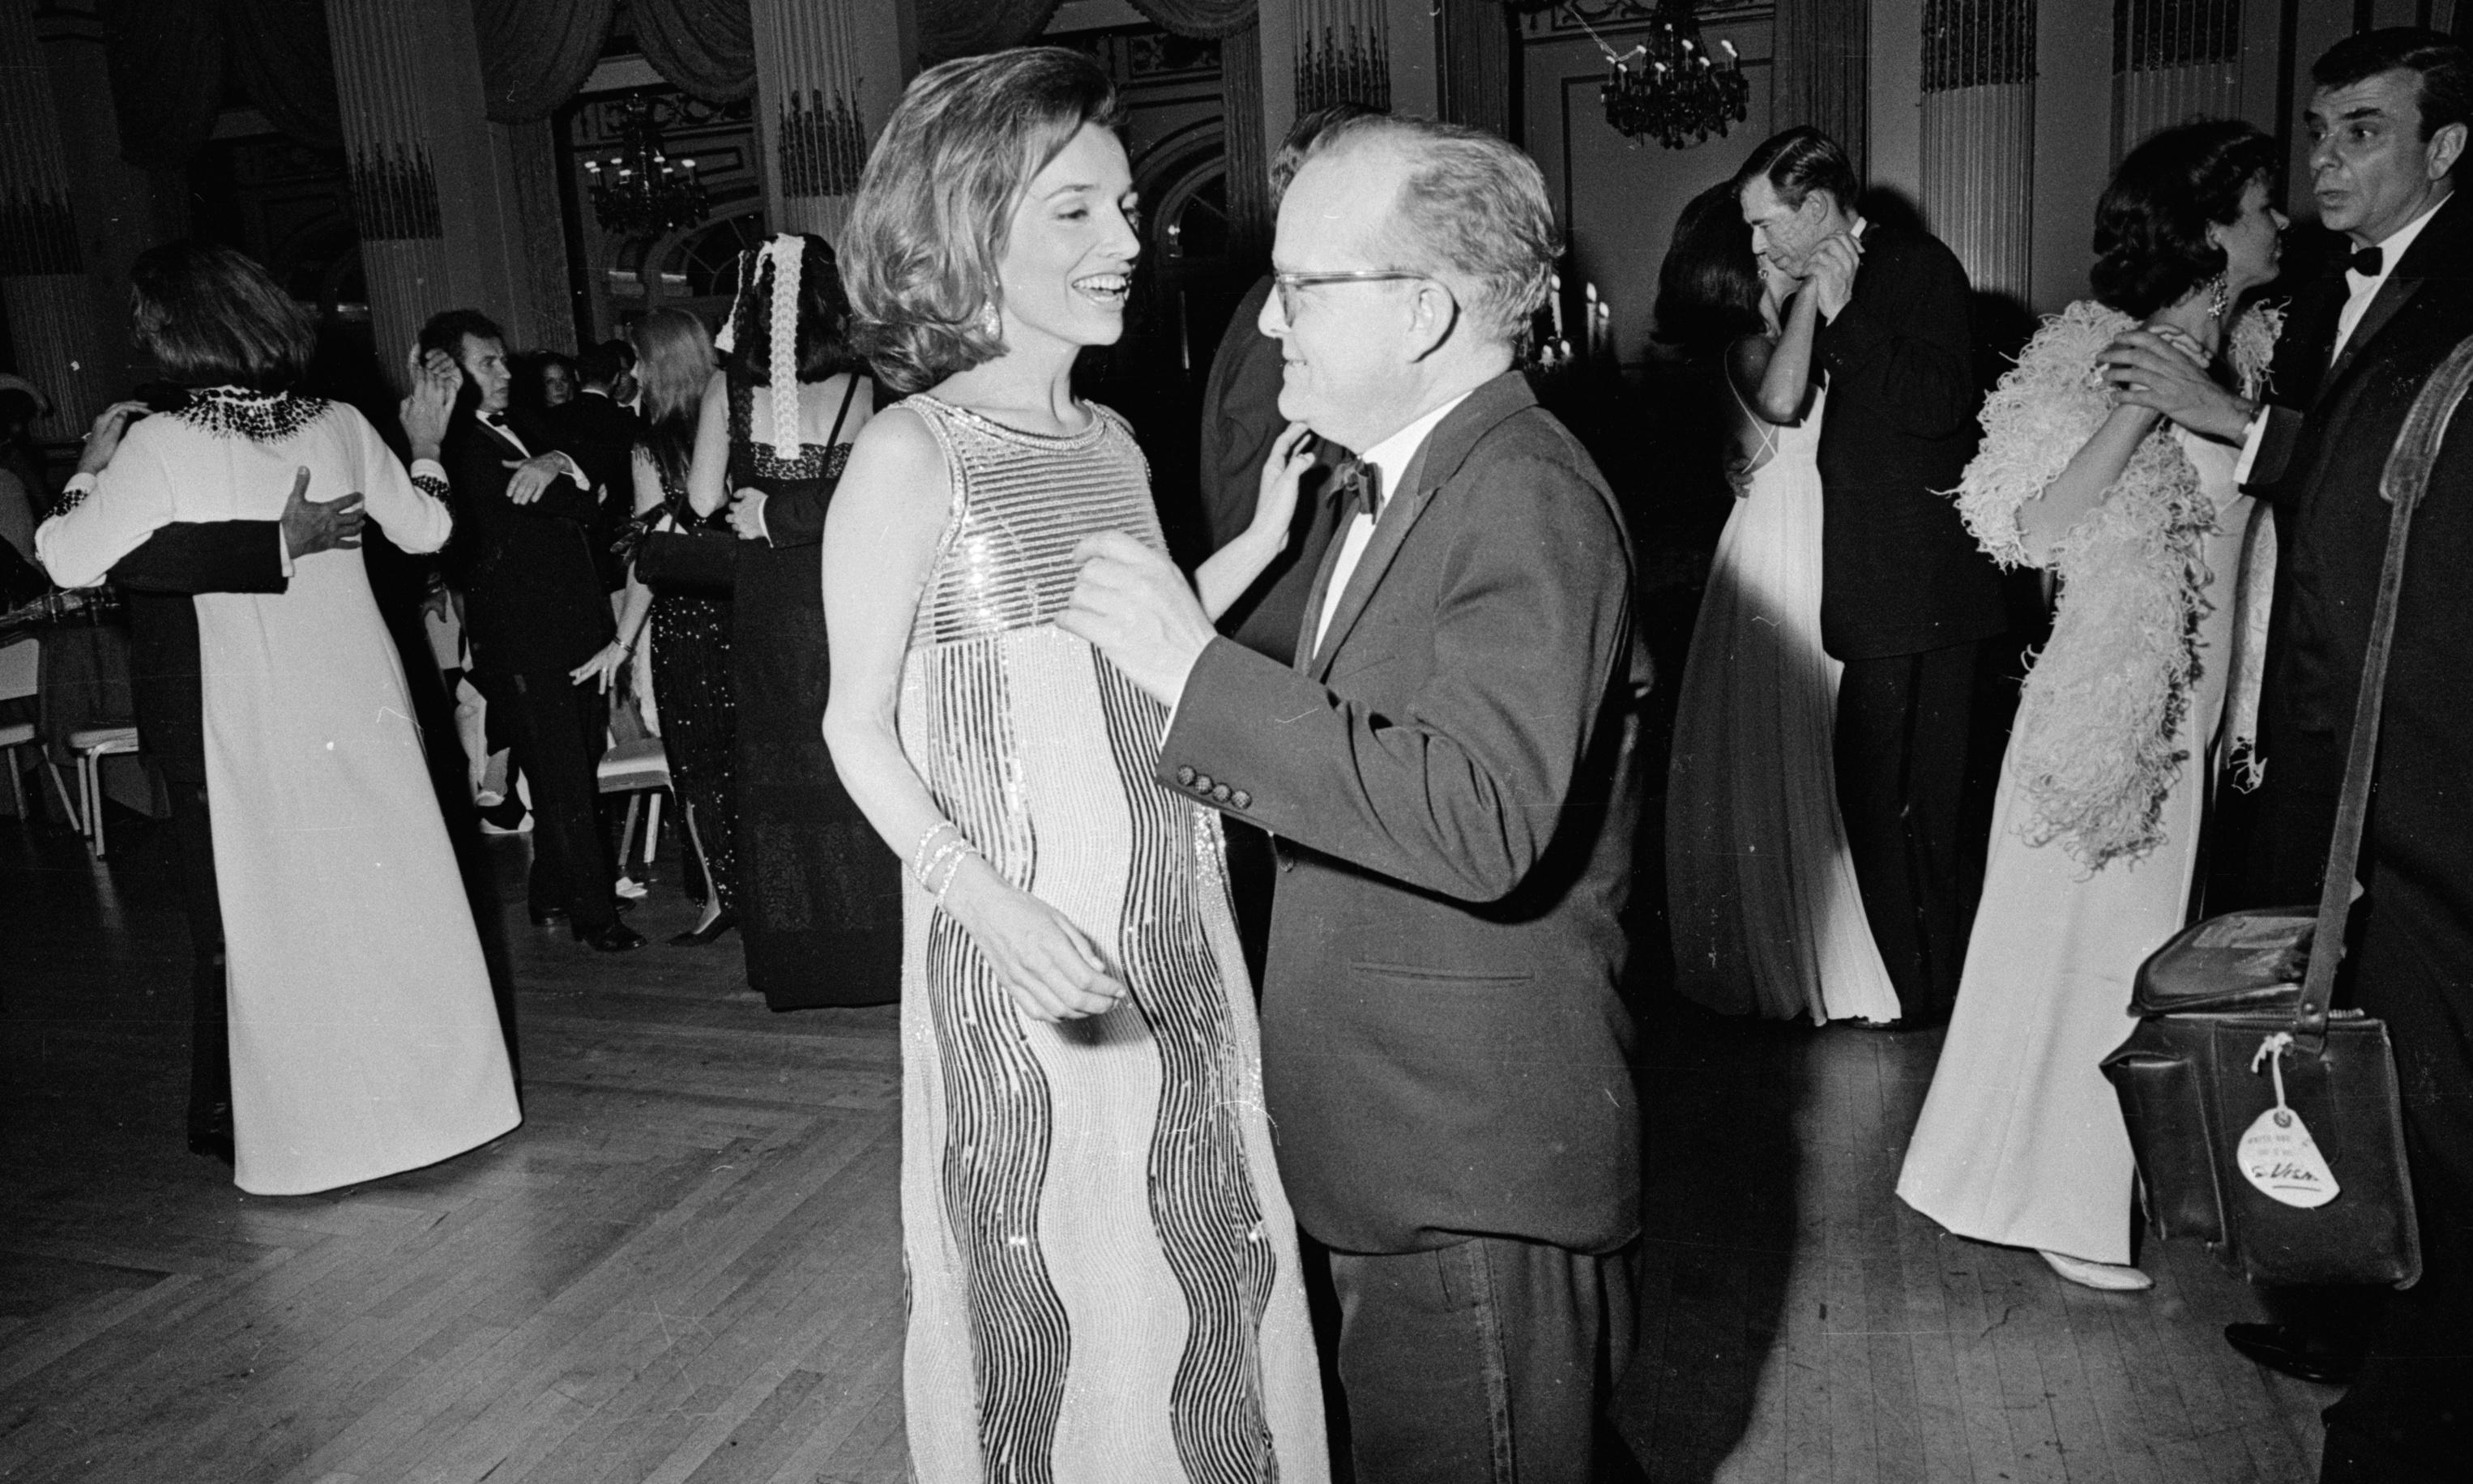 'Class acts': why Lee Radziwill and the high-society 'Swans' are back in vogue